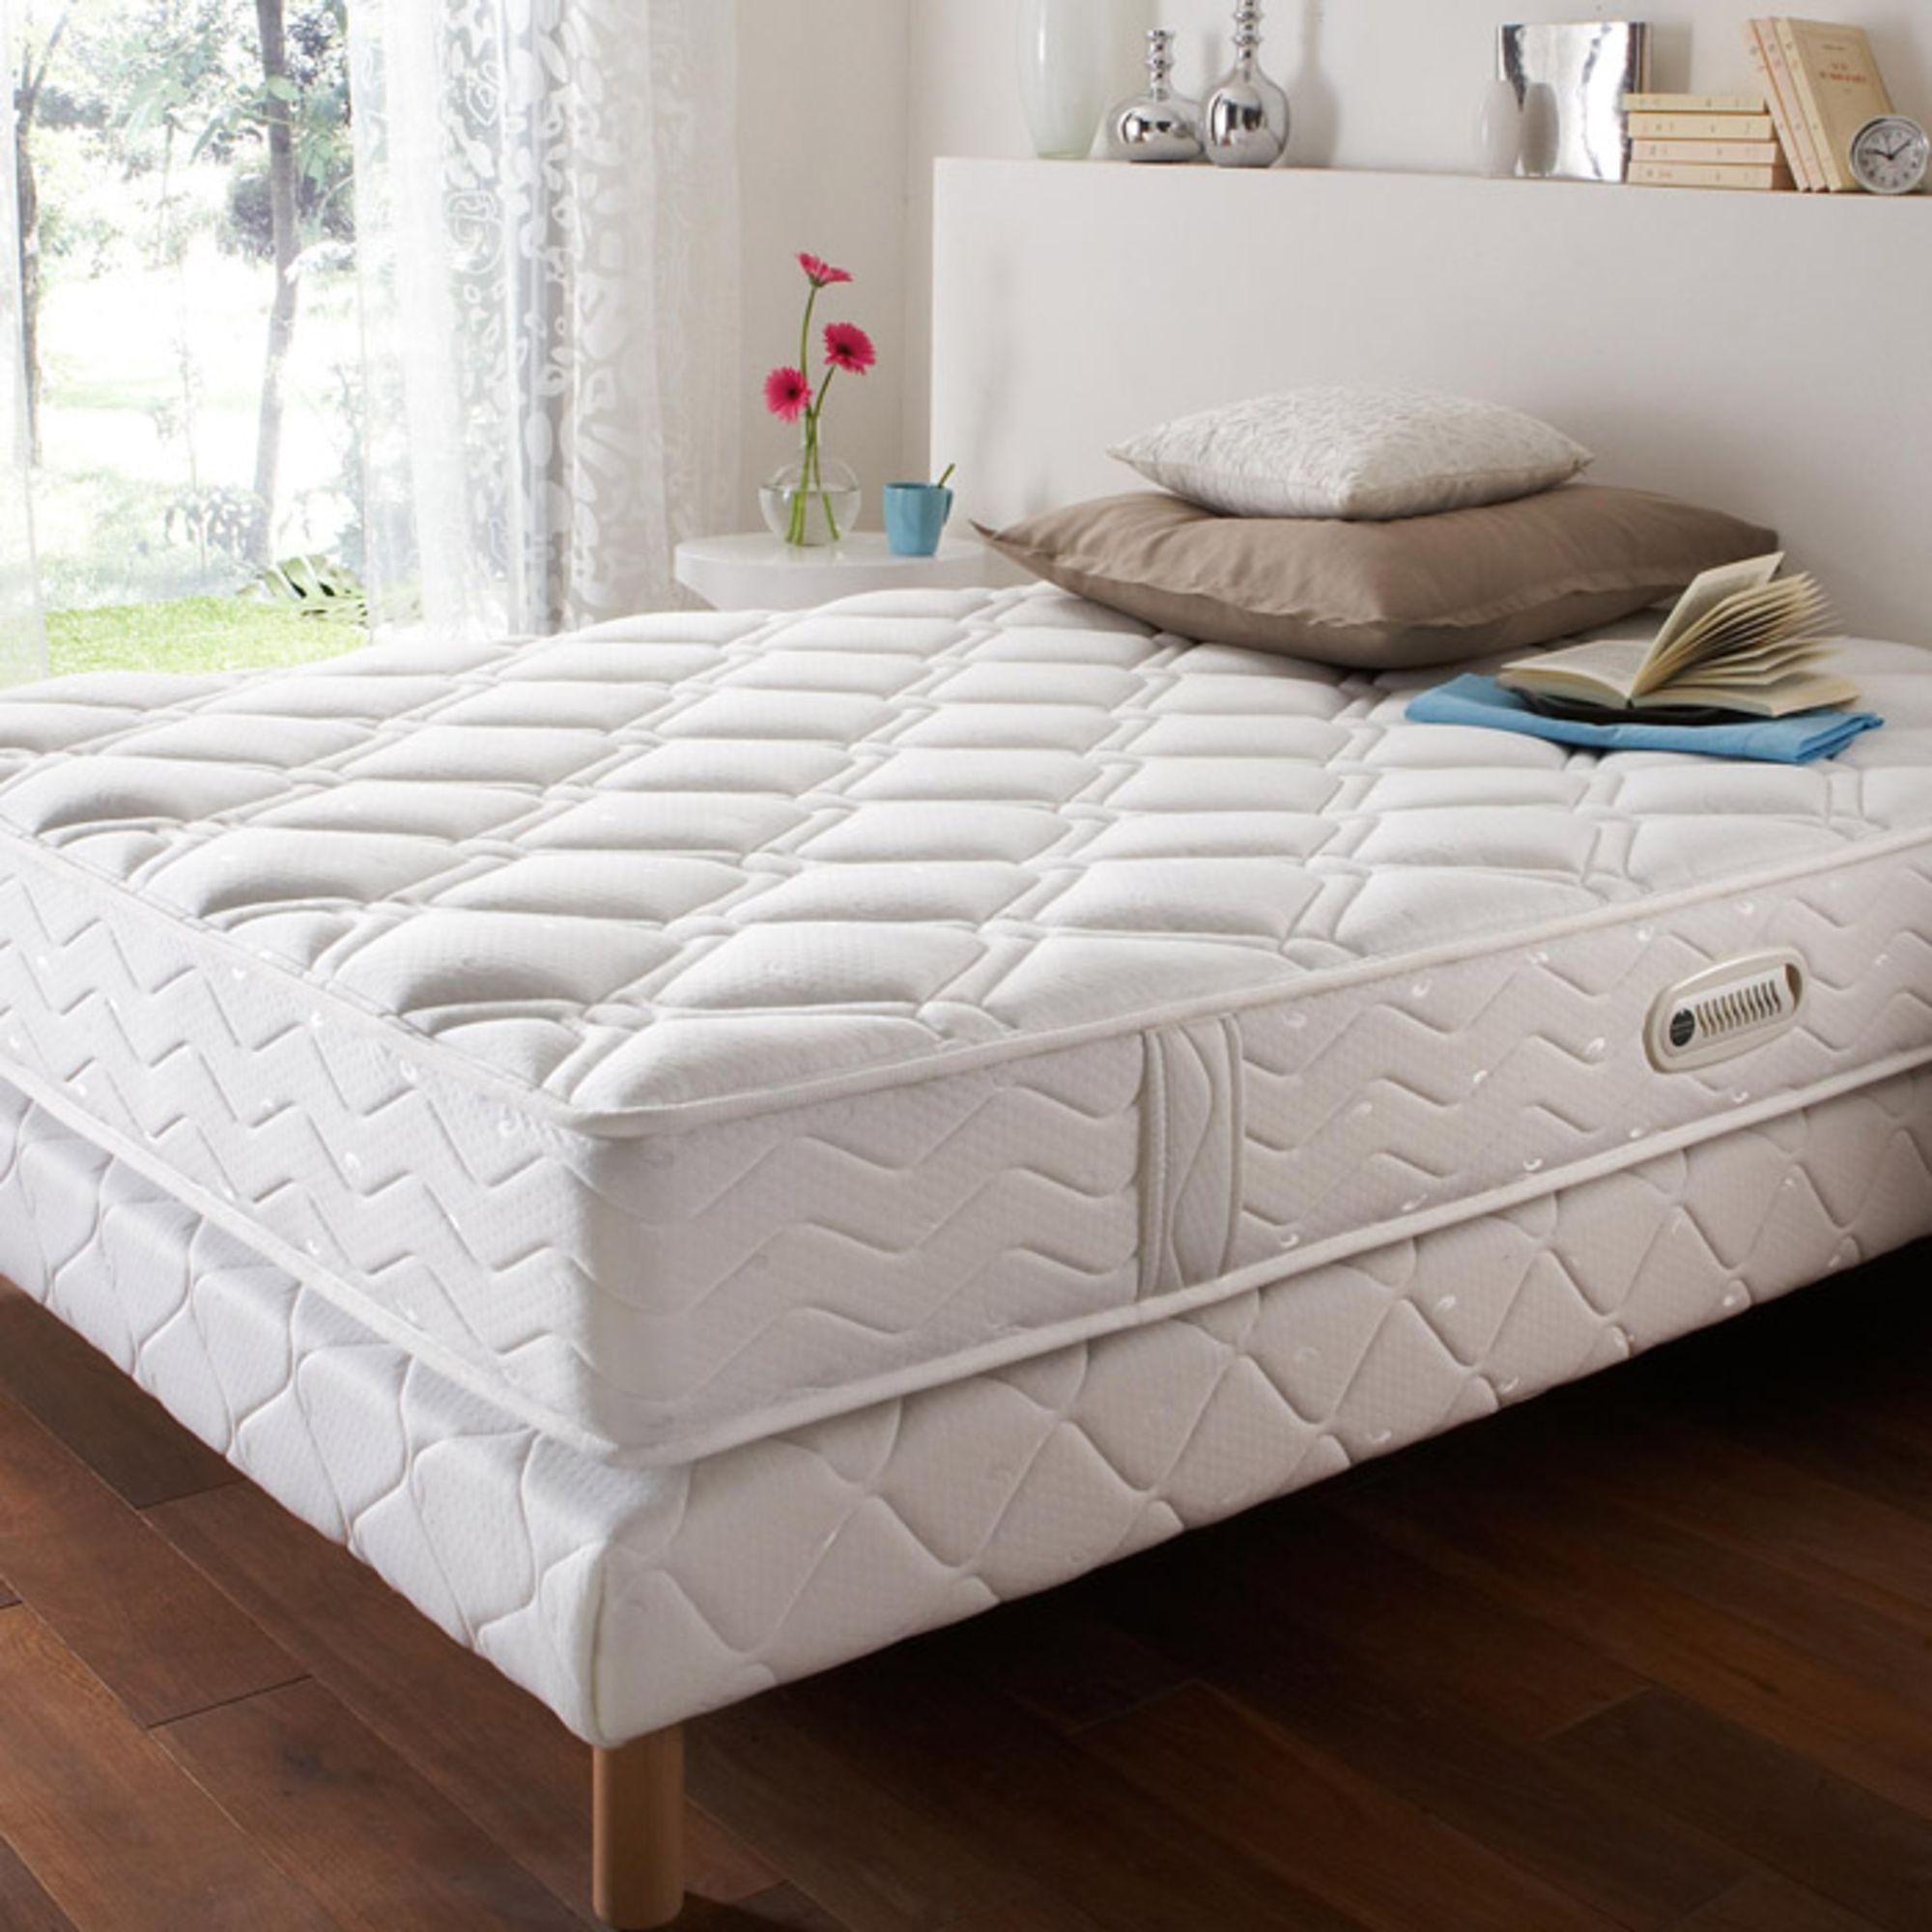 ensemble matelas ressorts accueil grand confort soutien ferme sommier duvivier kin tonic 90. Black Bedroom Furniture Sets. Home Design Ideas